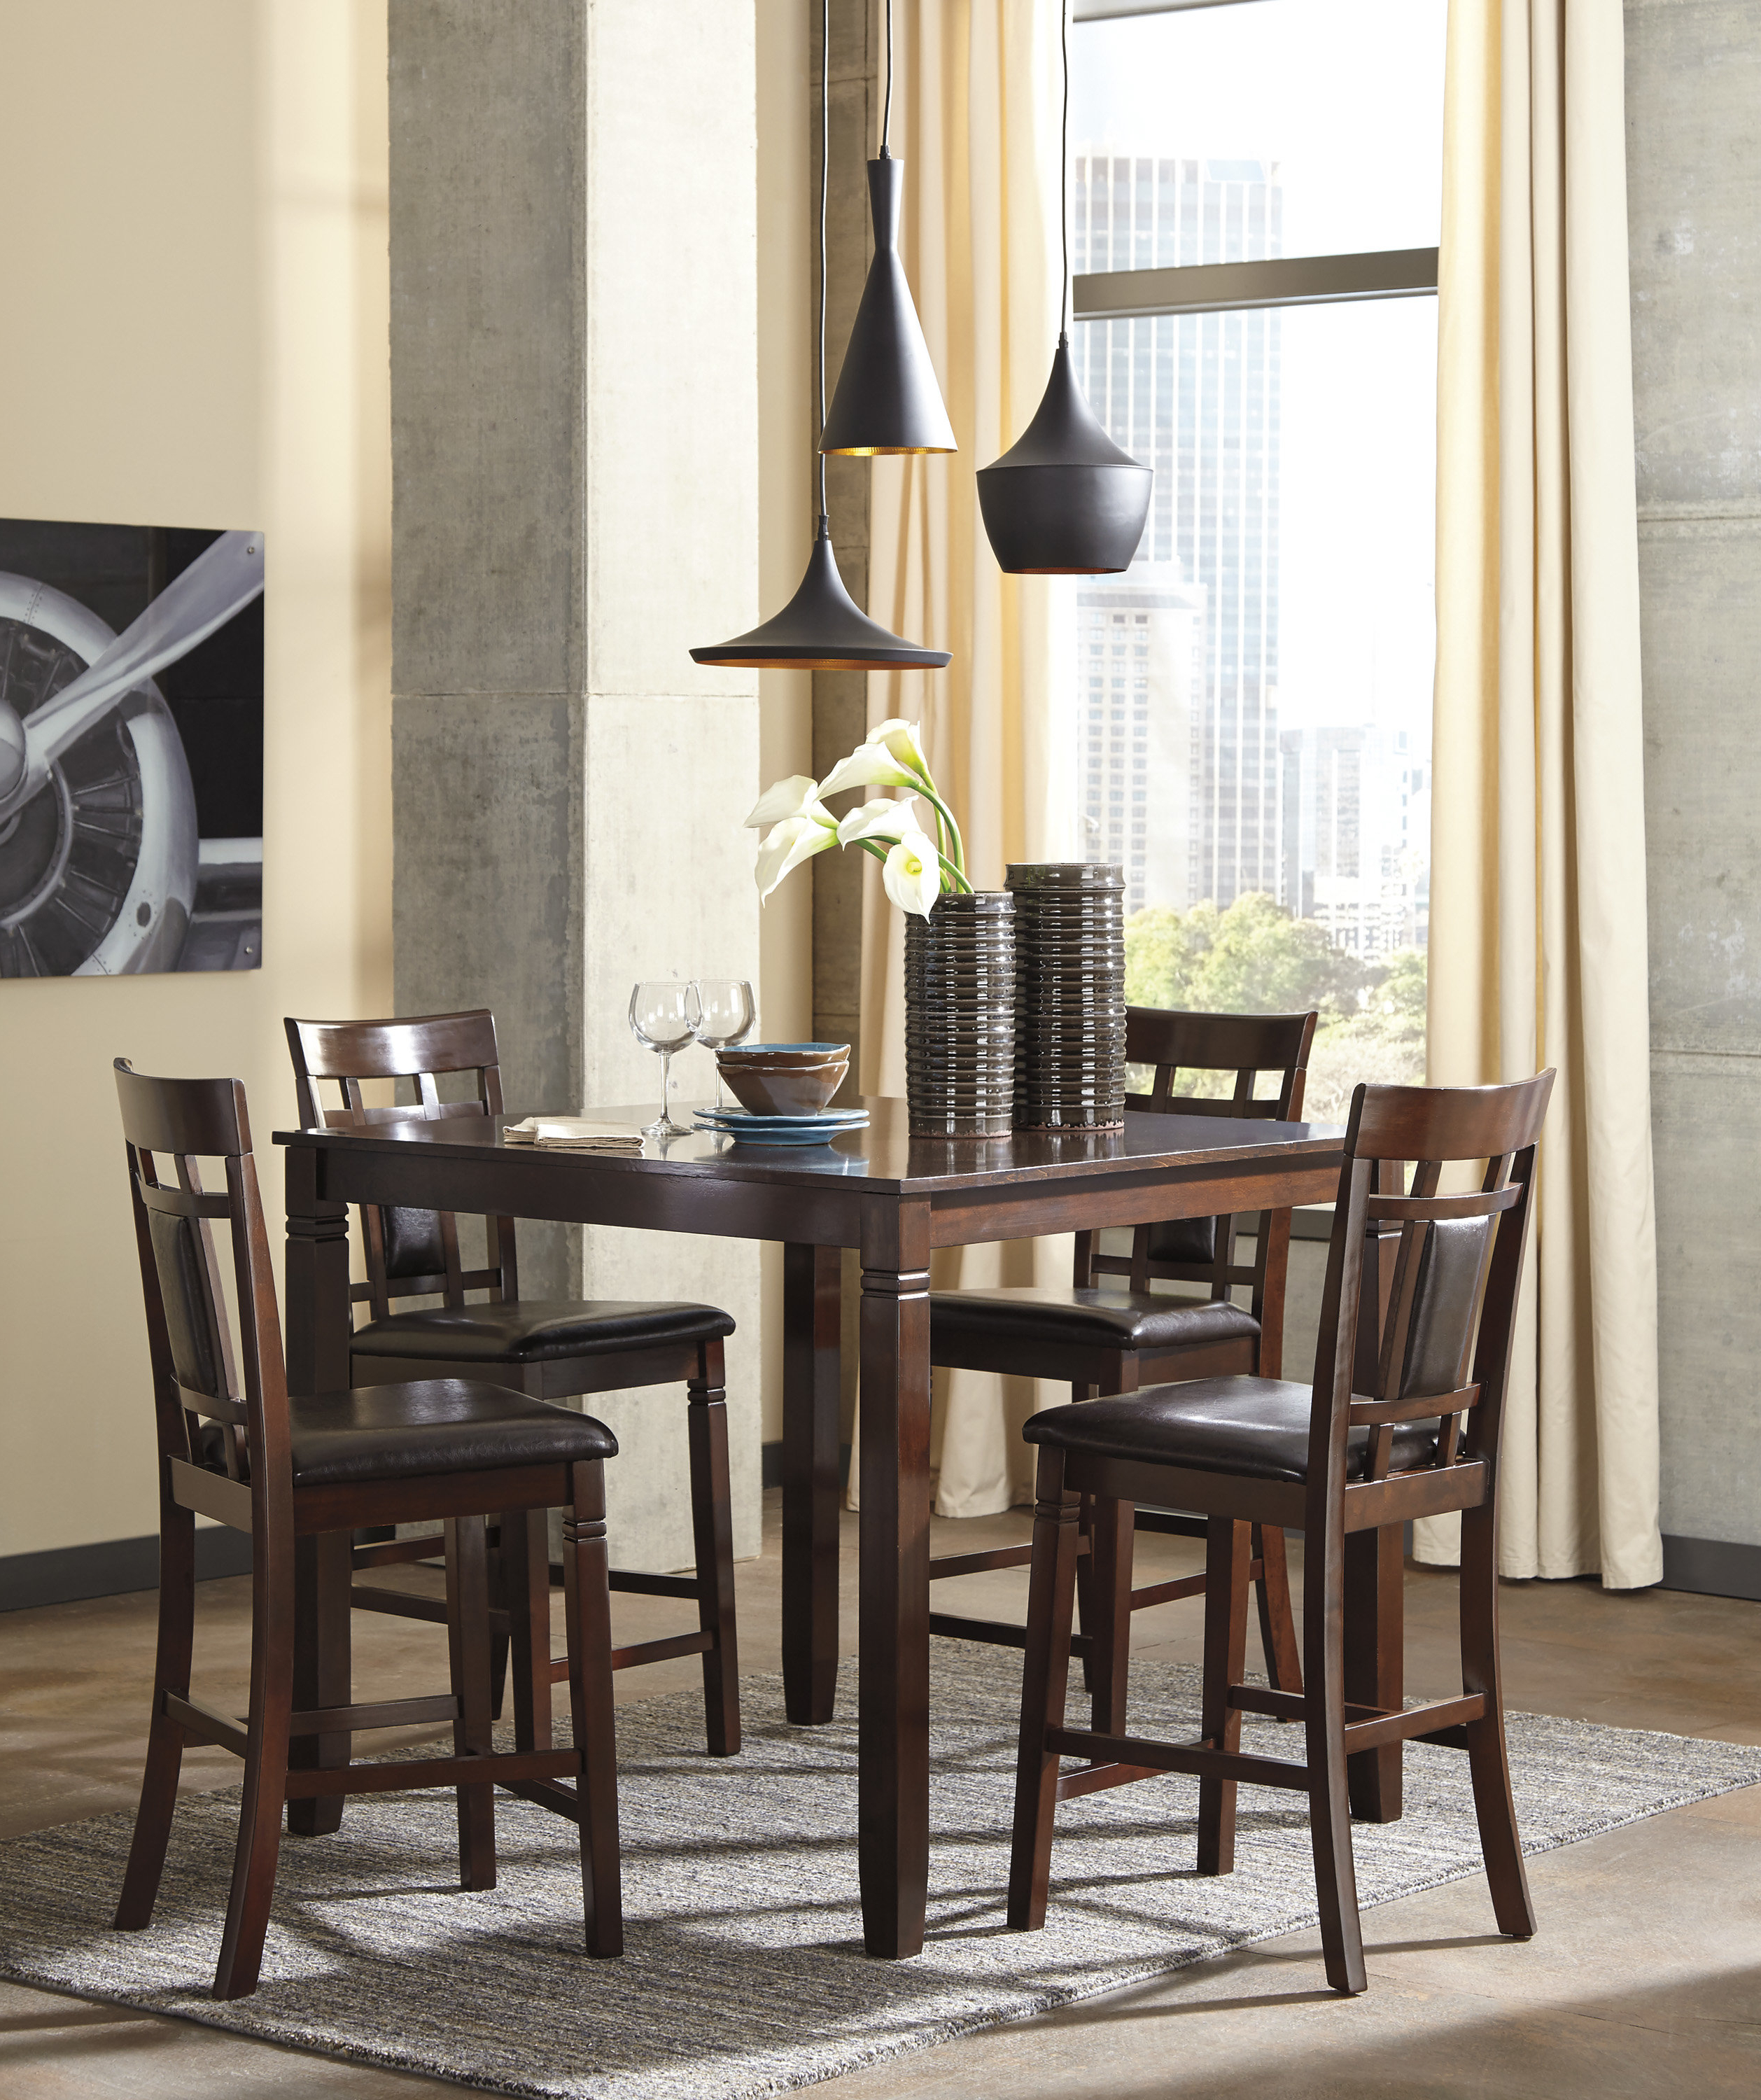 Joss & Main Throughout 2020 Bettencourt 3 Piece Counter Height Dining Sets (View 22 of 25)